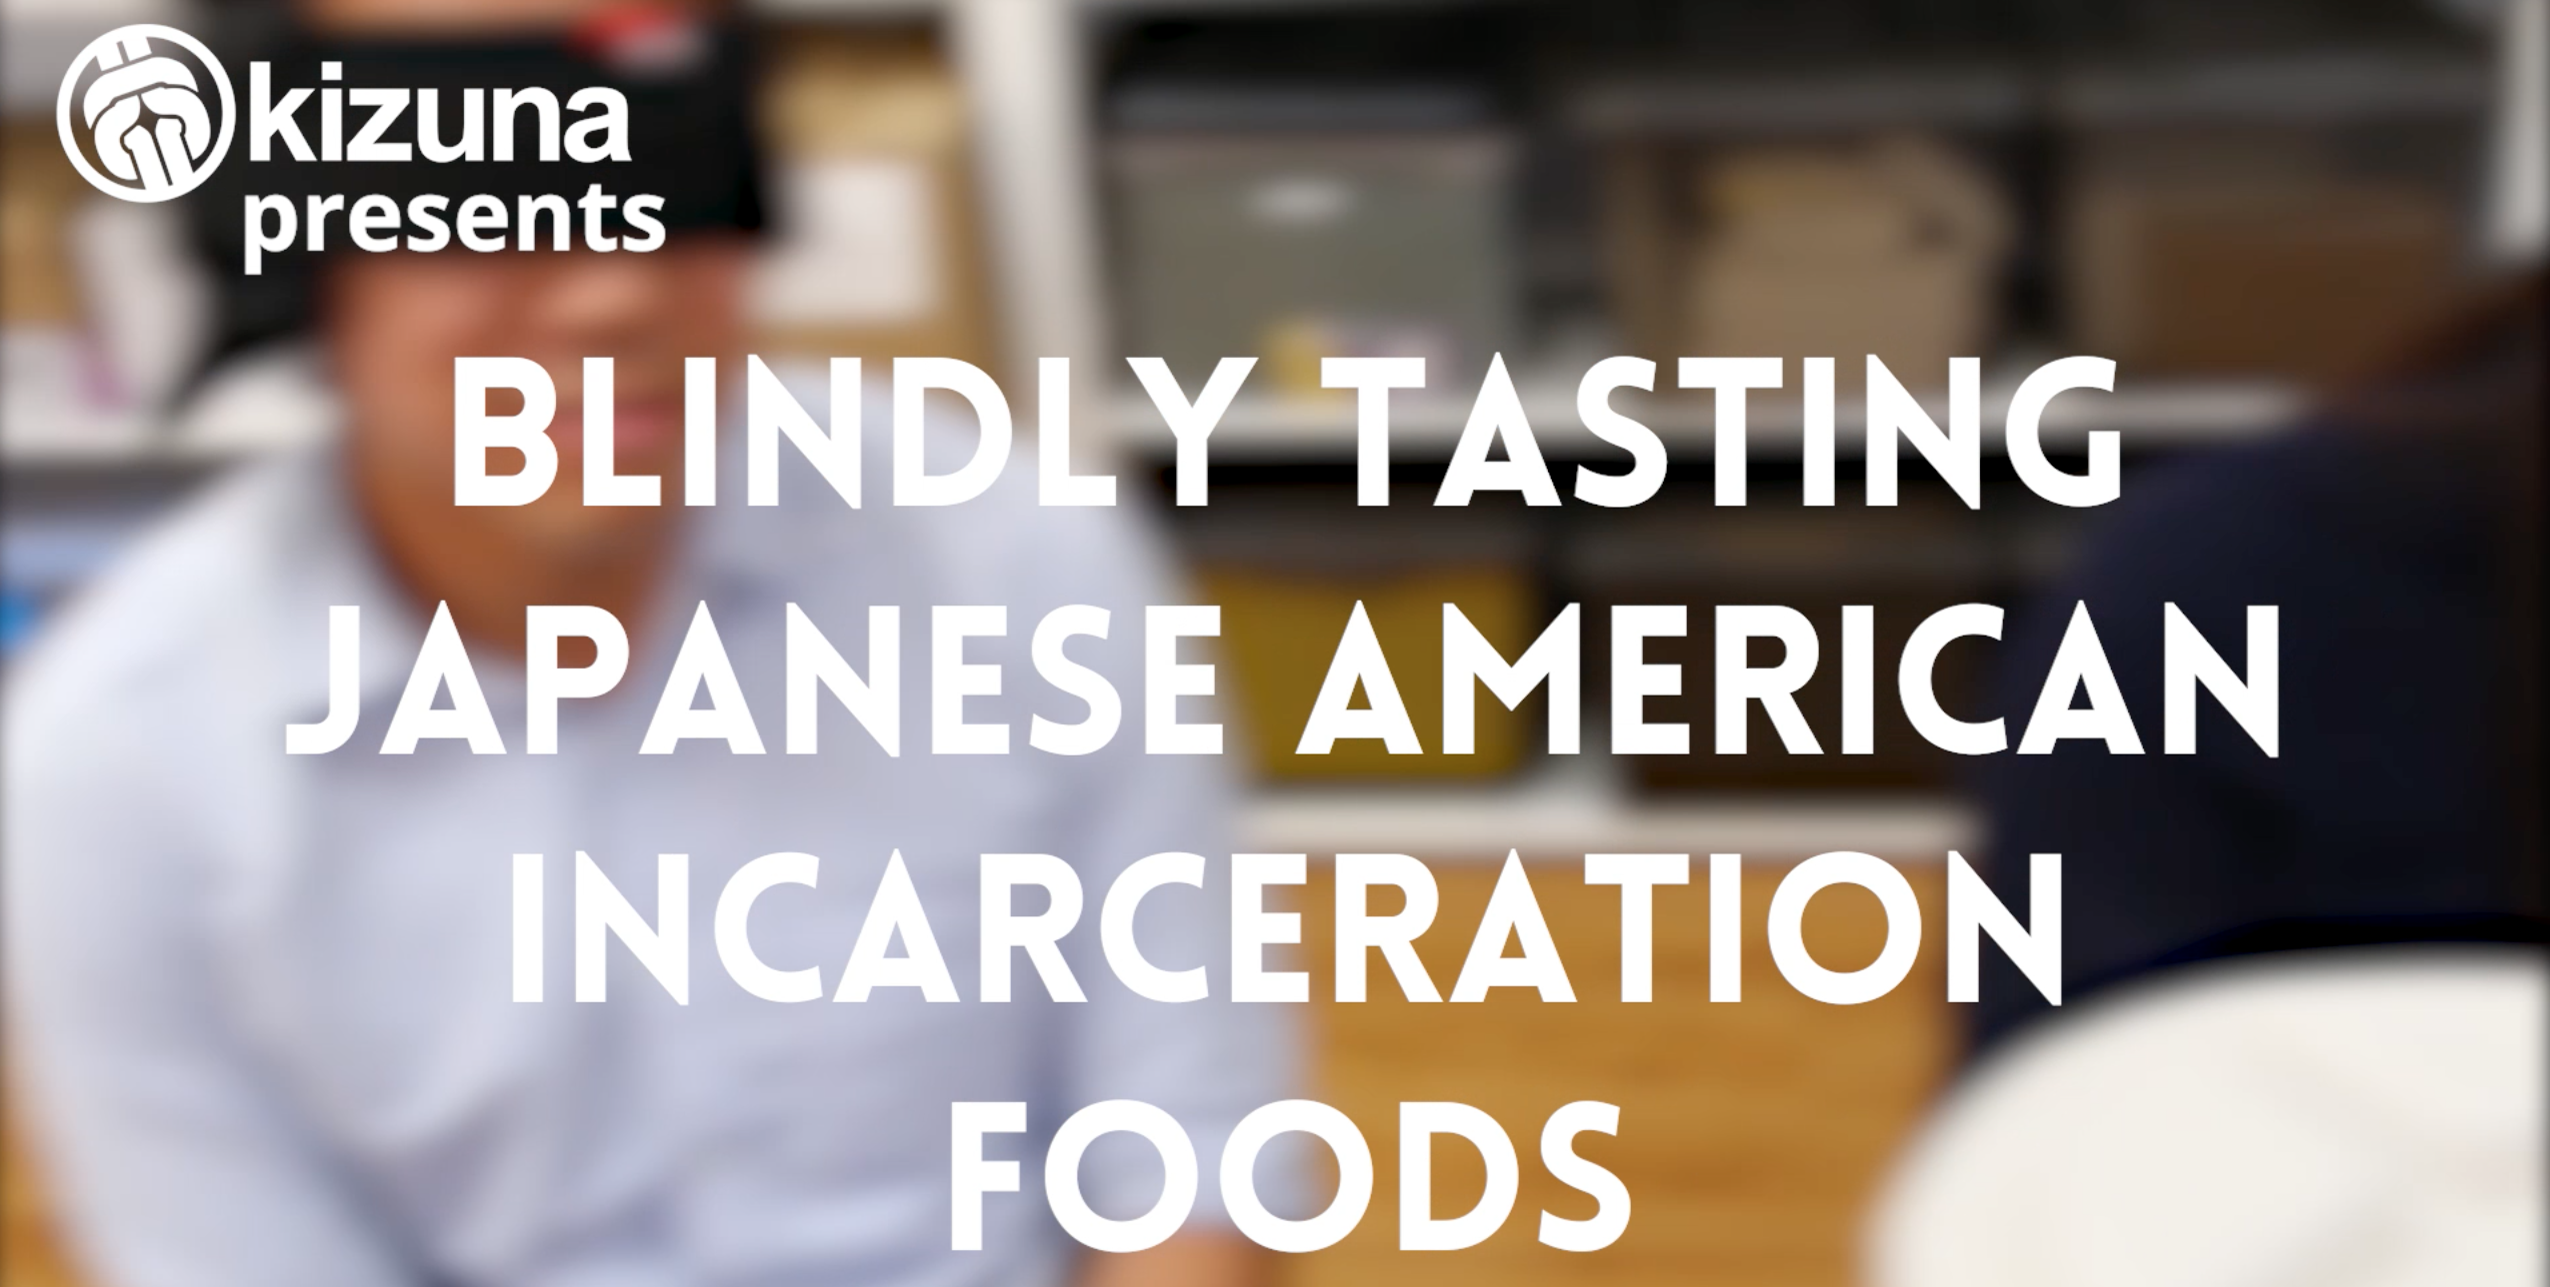 http://www.gokizuna.org/post/blindly-tasting-japanese-american-incarceration-foods